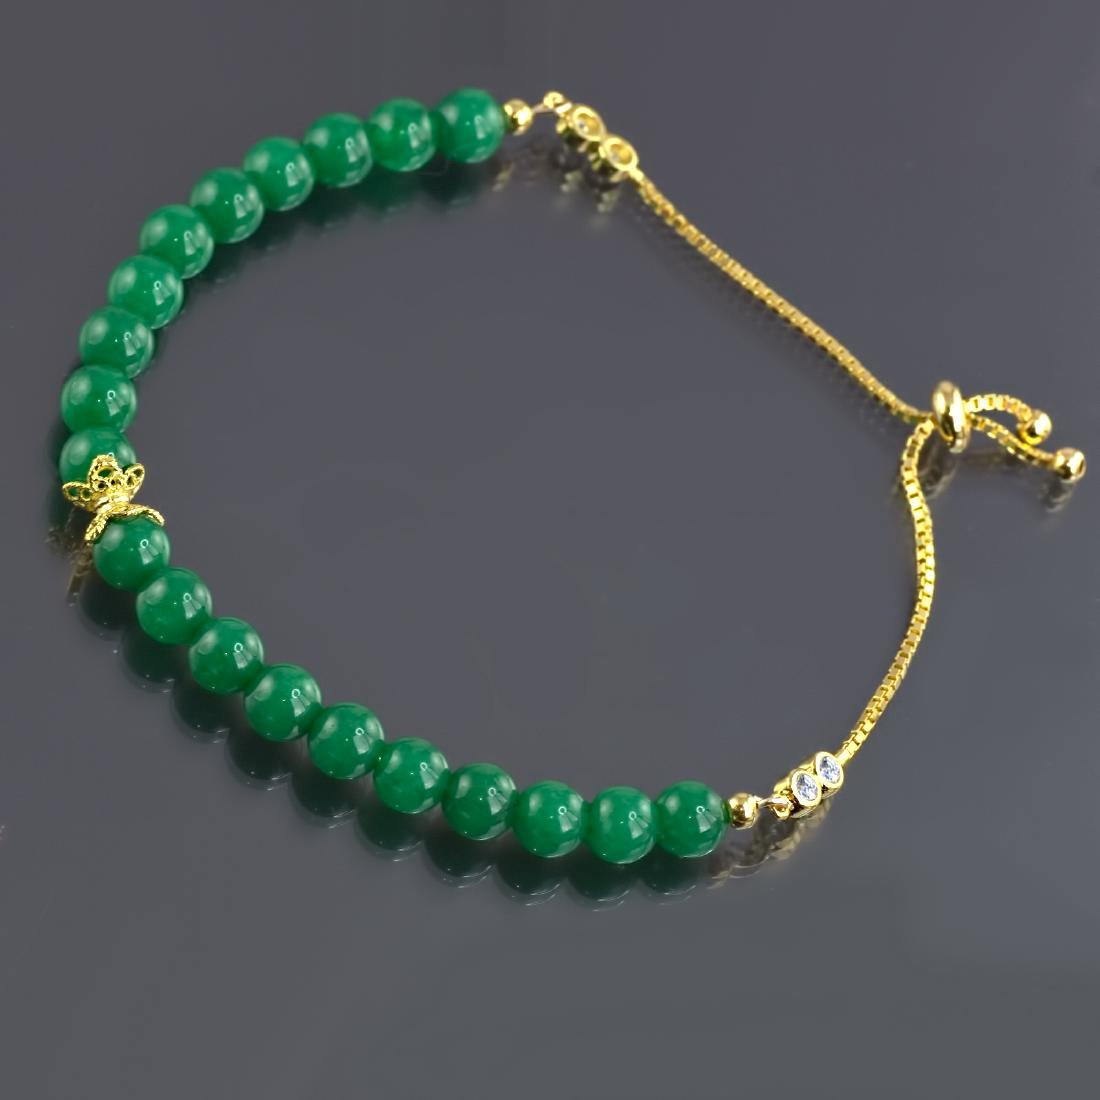 Adjustable Imperial Green Jade Bracelet - 4